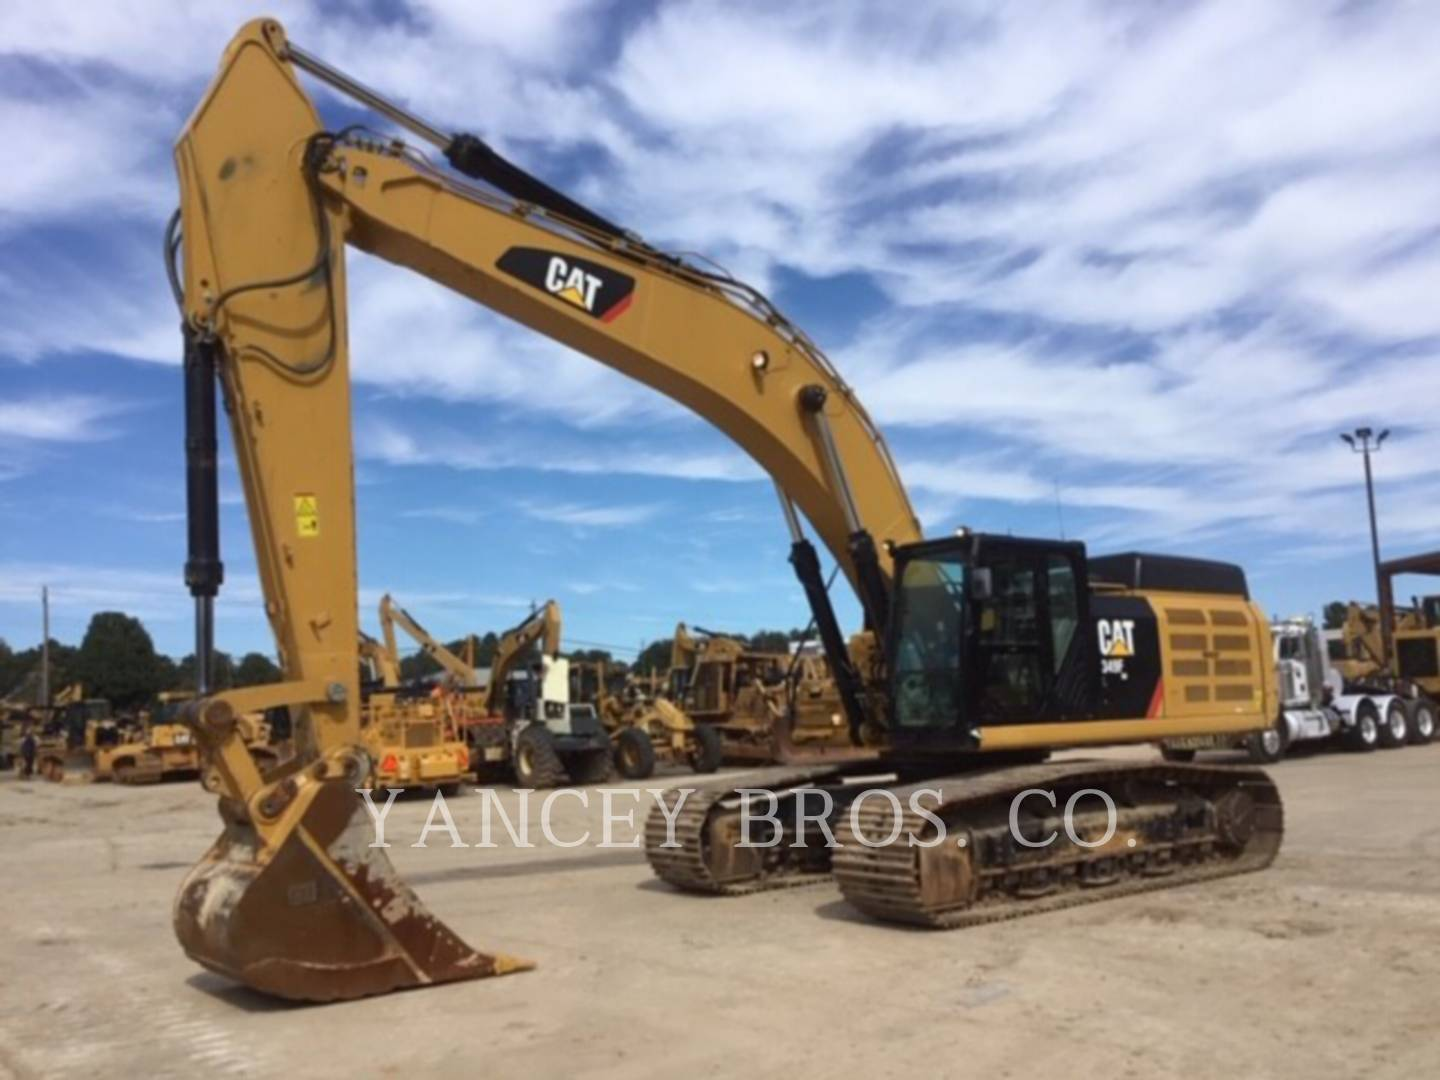 2016 - CATERPILLAR - 349FL 14